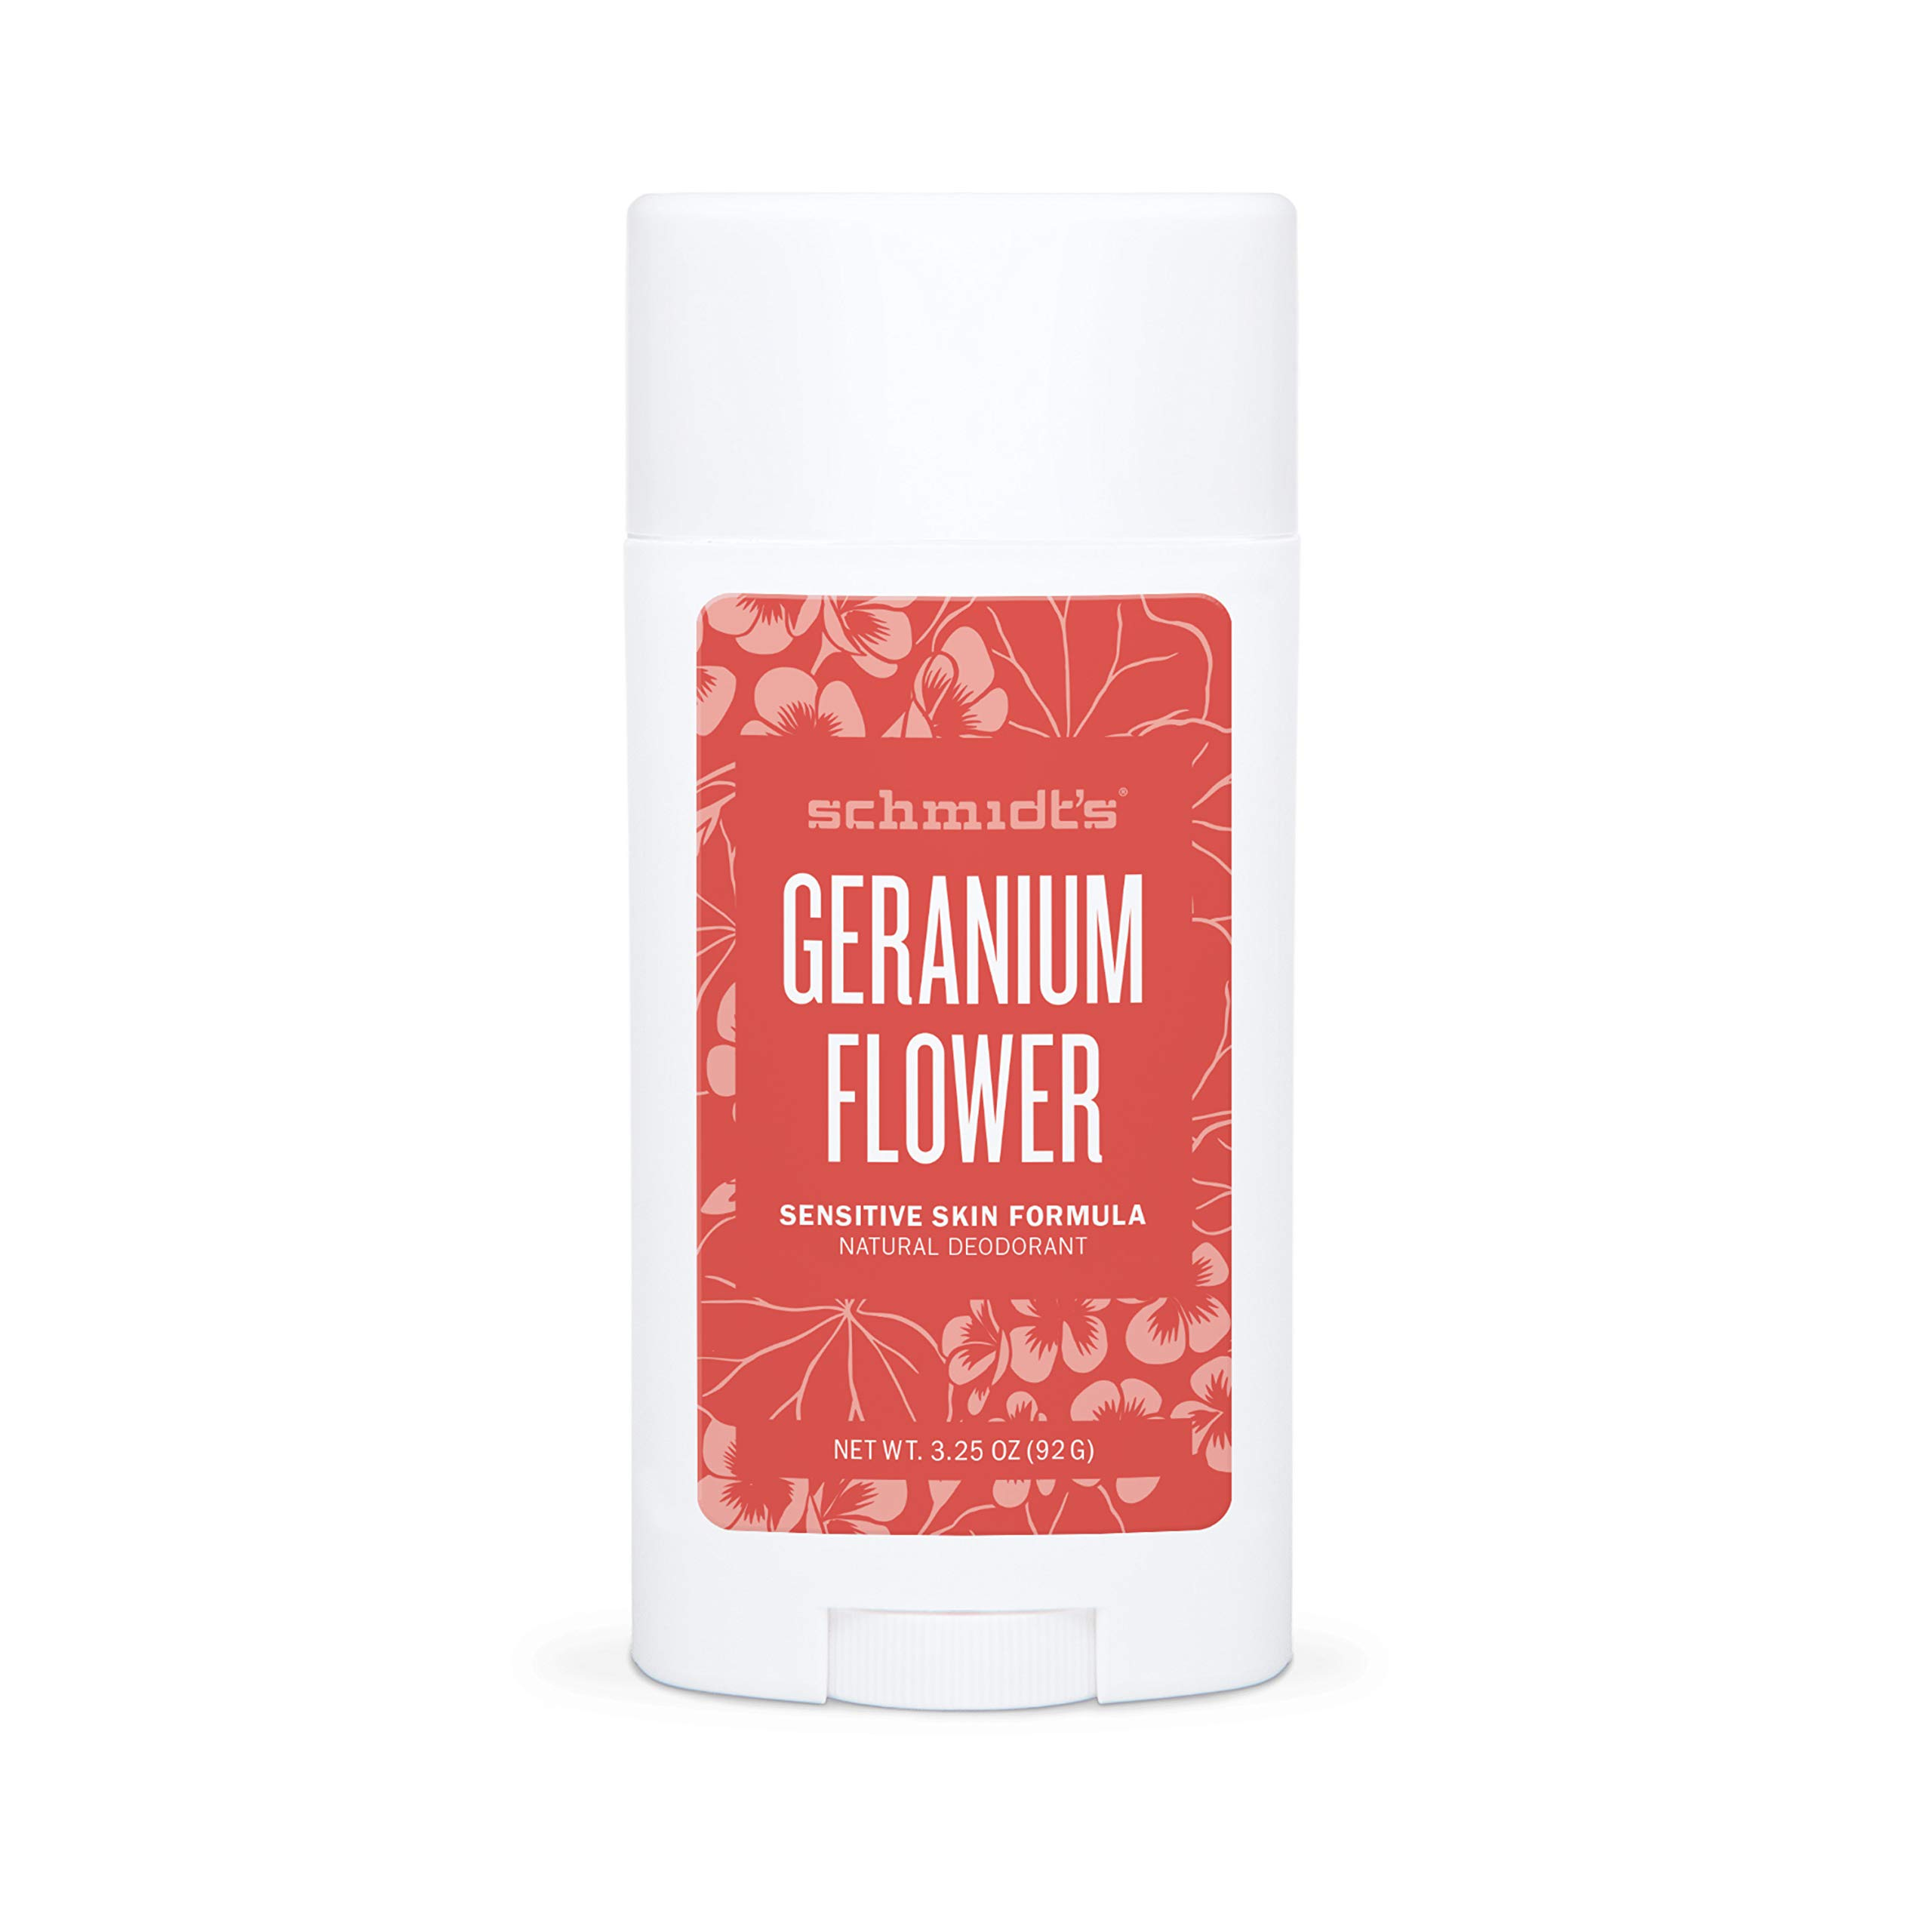 Schmidt's Aluminum Free Natural Deodorant for Women and Men, Geranium Flower for Sensitive Skin with 24 Hour Odor Protection, Certified Cruelty Free, Vegan Deodorant, 3.25 oz